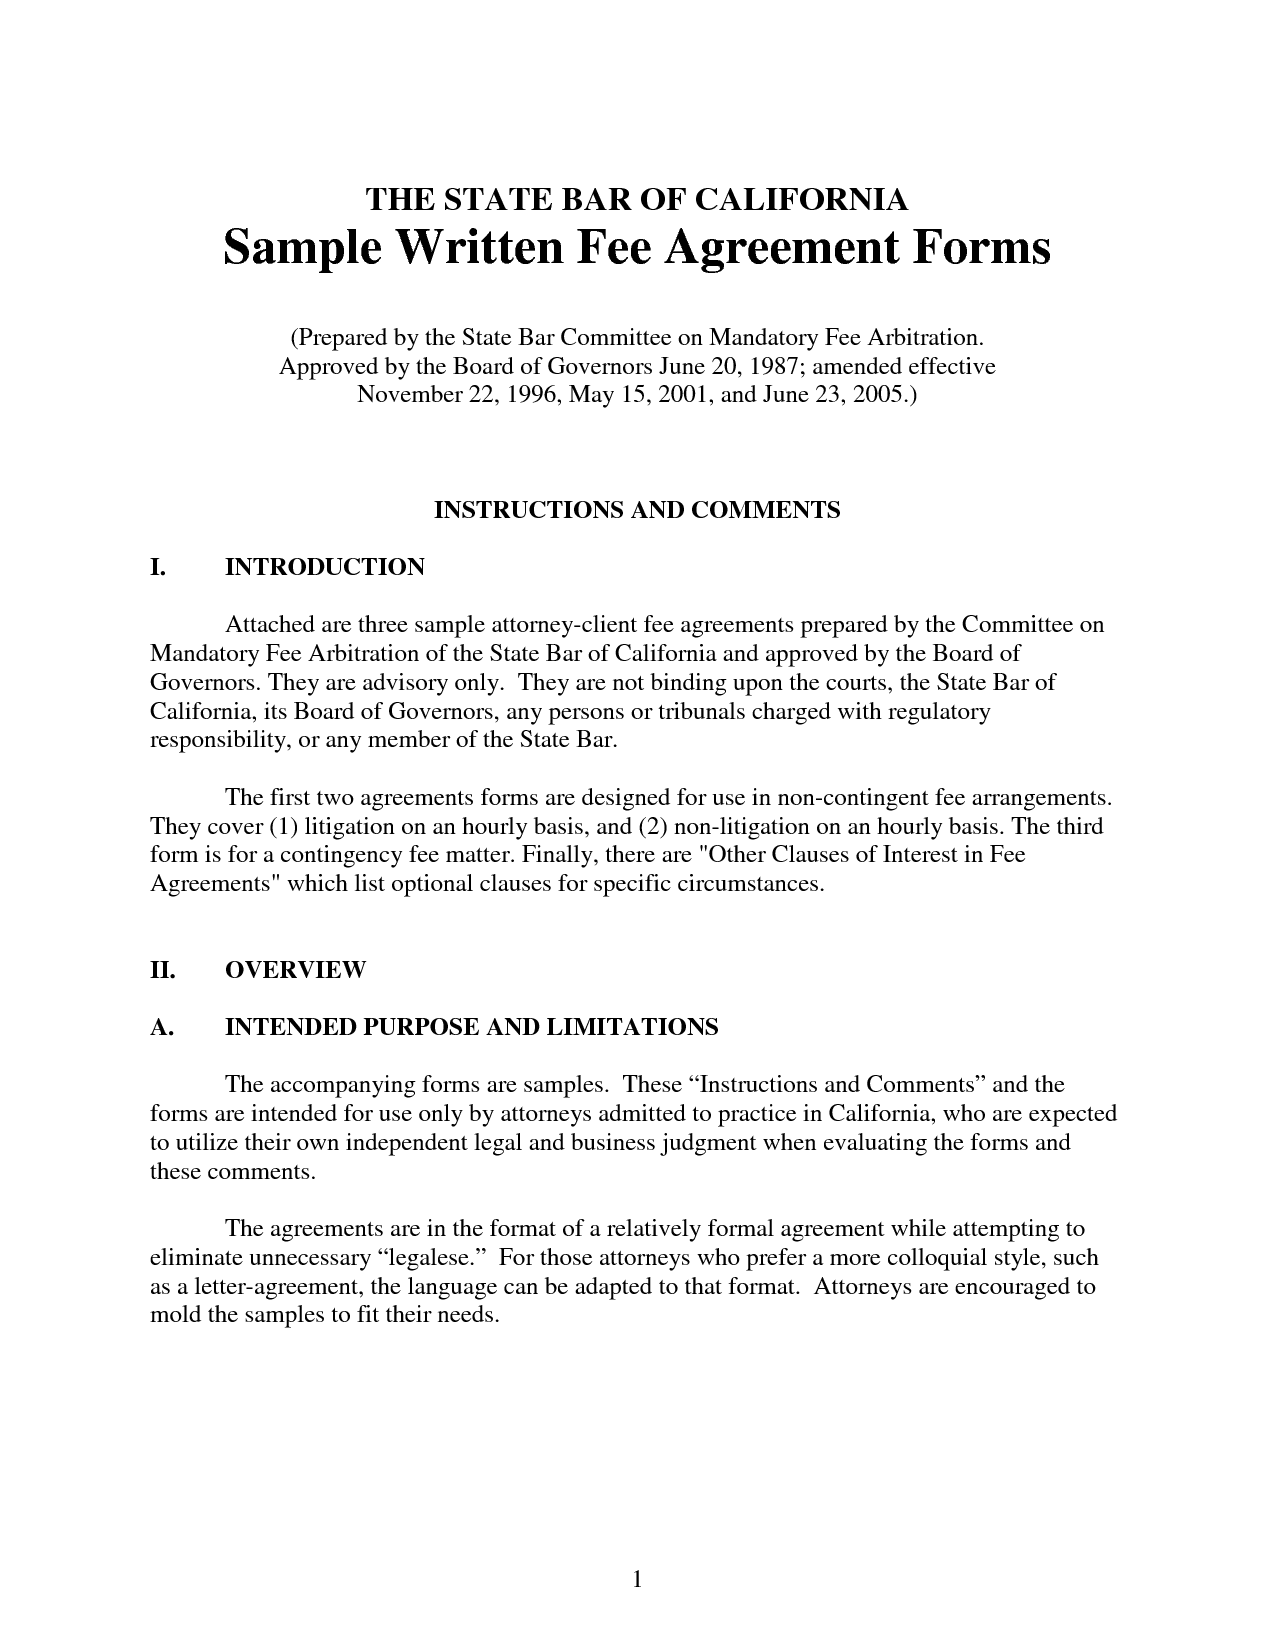 legal agreement form by tricky legal agreement forms real state pinterest. Black Bedroom Furniture Sets. Home Design Ideas